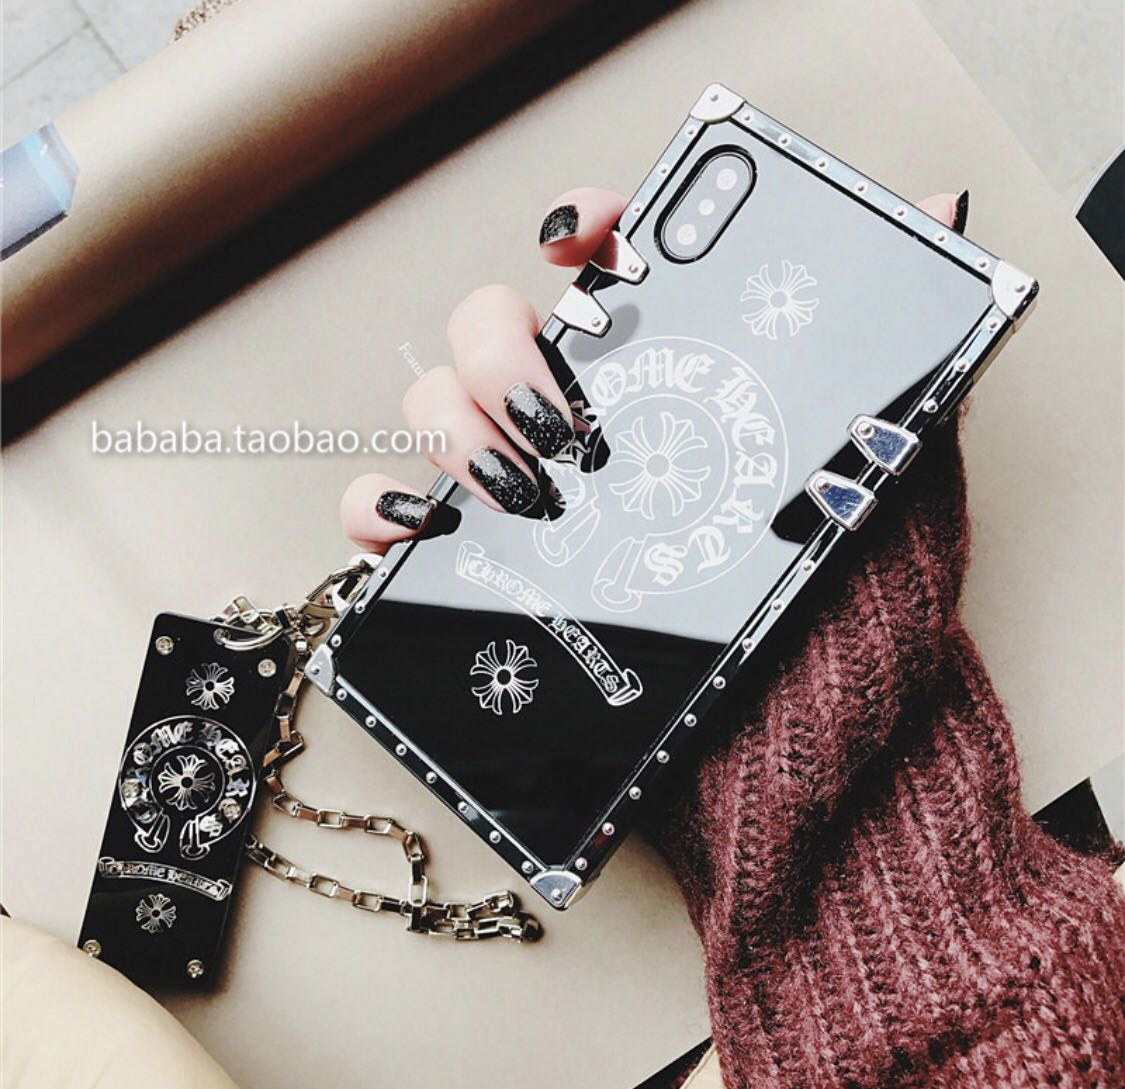 0326bc78c1ee Home · Mobile Phones   Tablets · Mobile   Tablet Accessories · Cases    Sleeves. photo photo photo photo